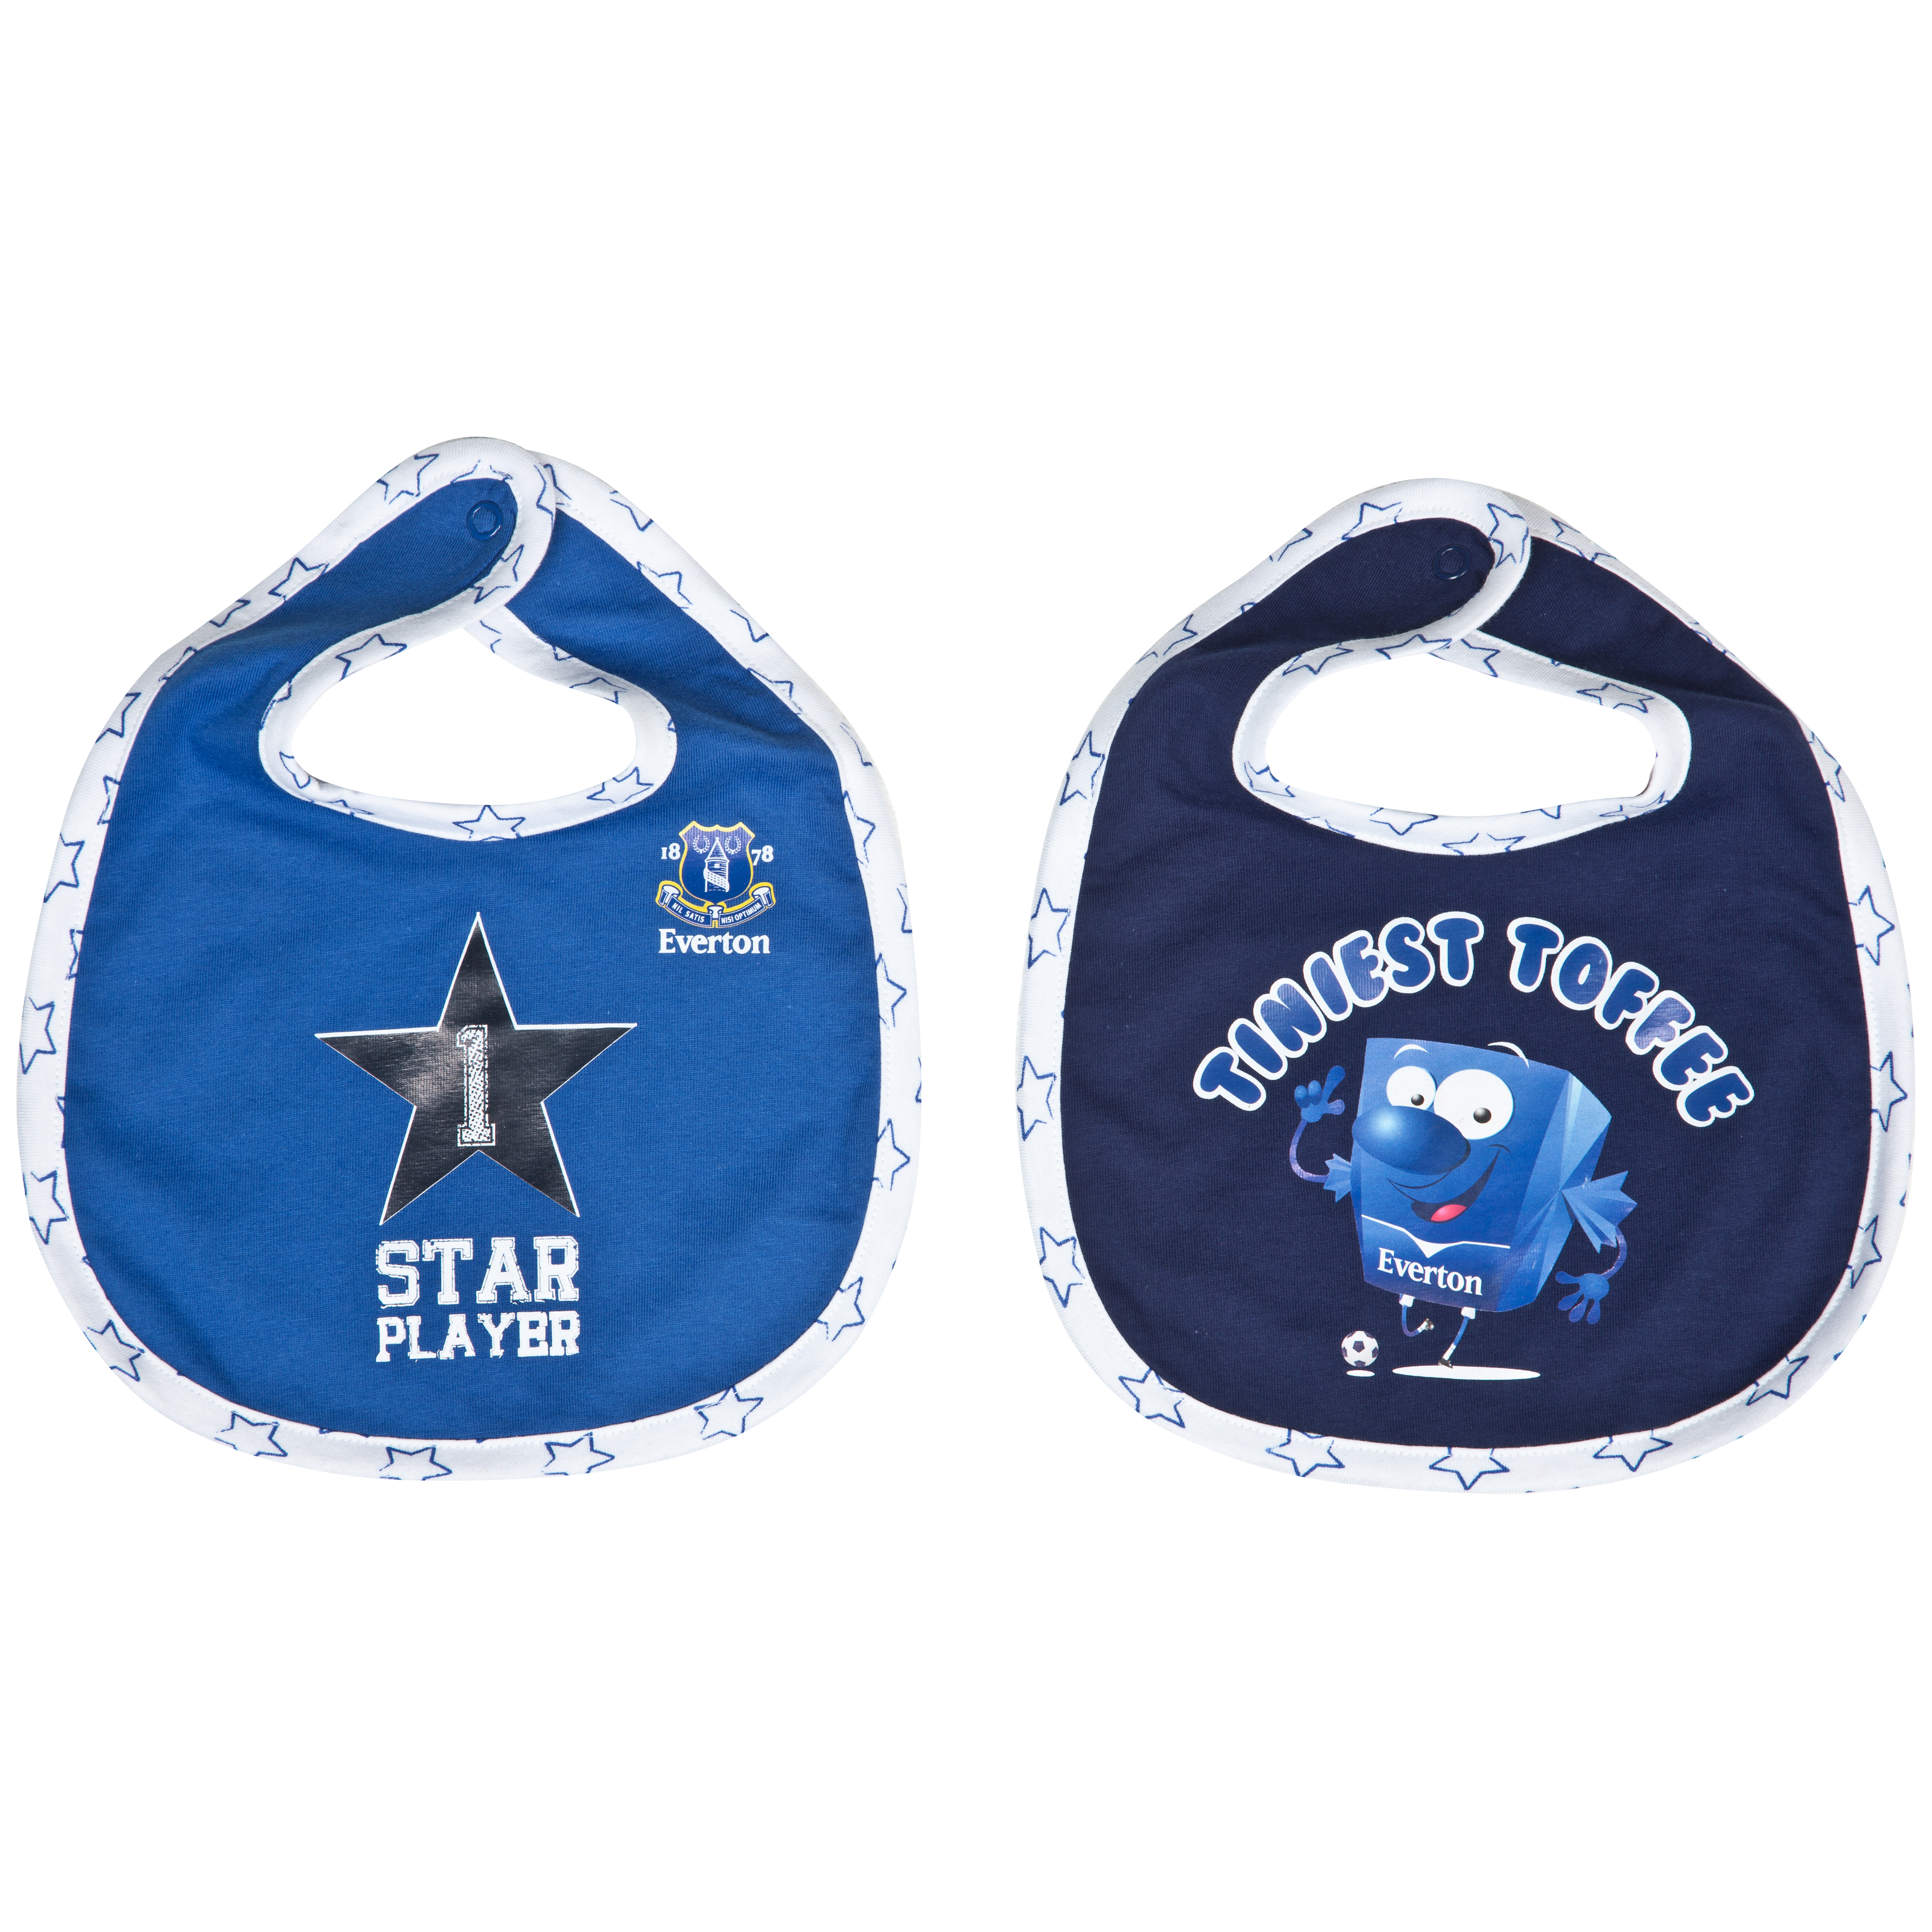 Everton Star Pack of 2 Bibs - Navy/Everton Blue - Baby